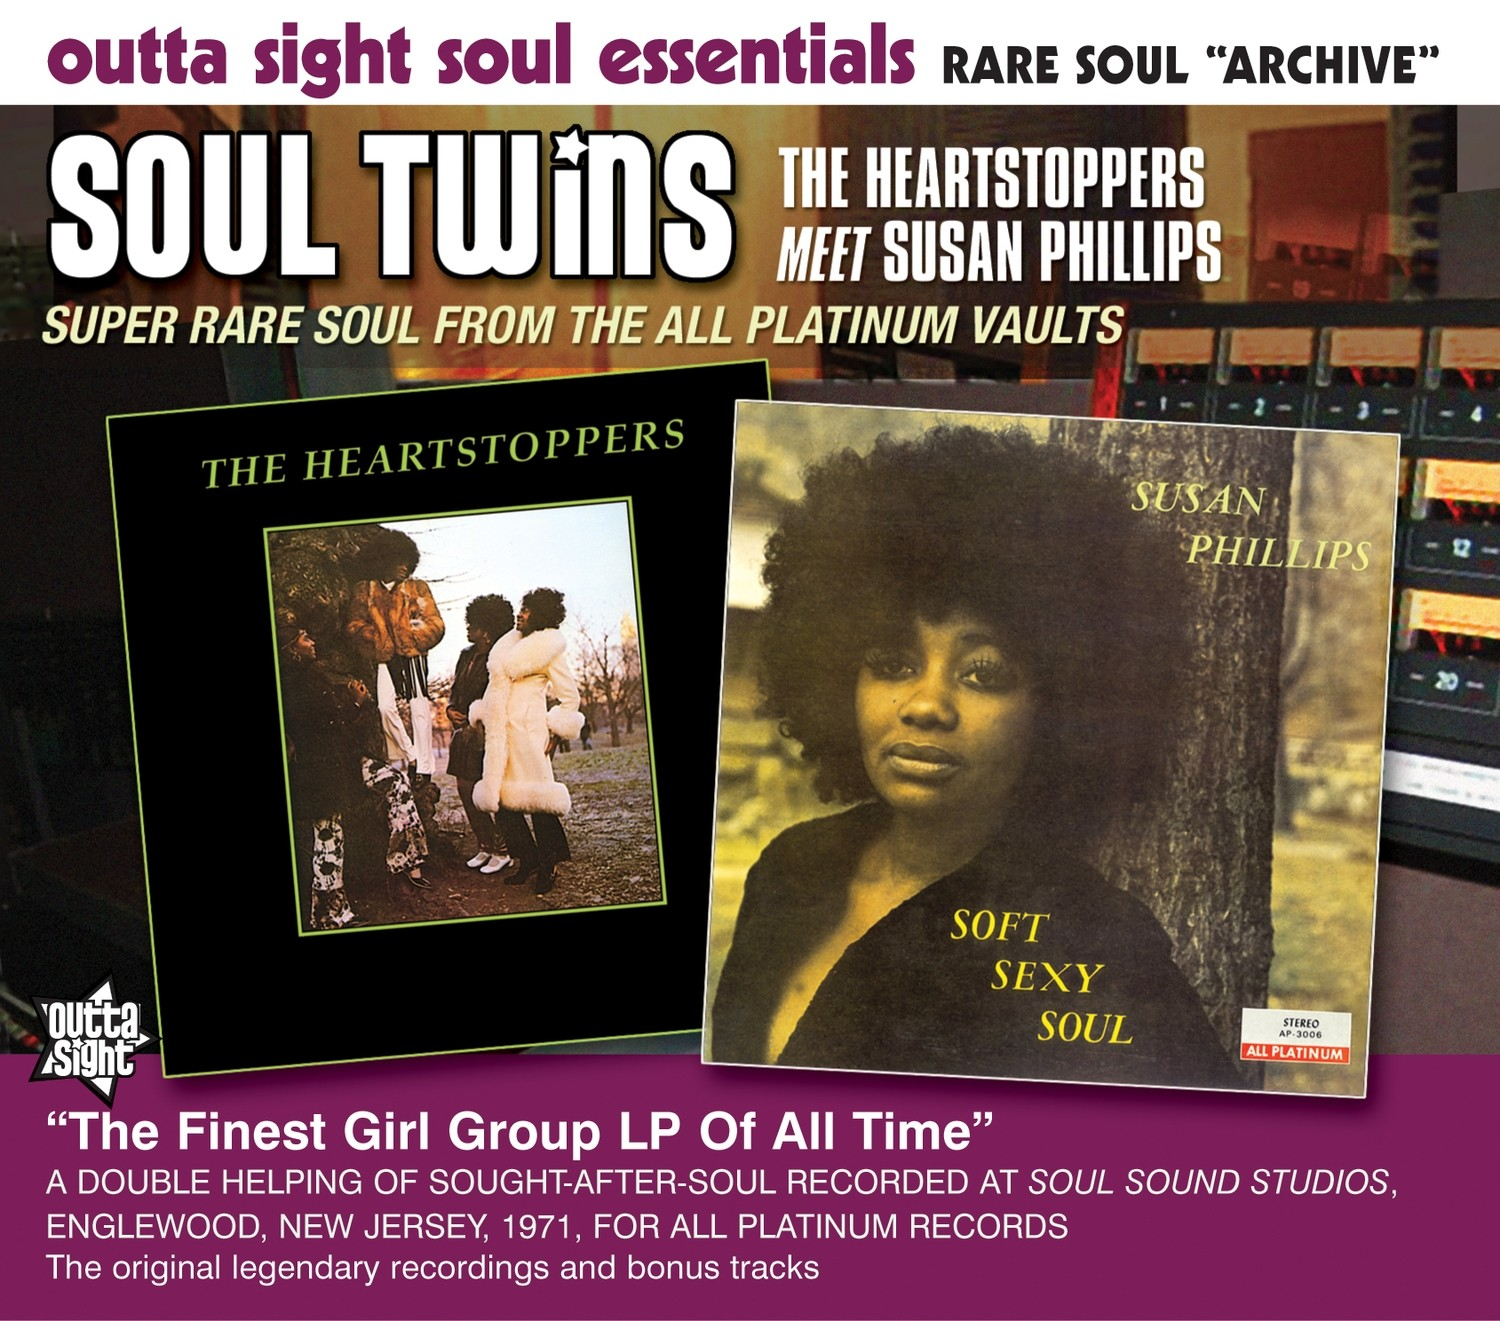 SOUL TWINS - The Heartstoppers Meet Susan Phillips